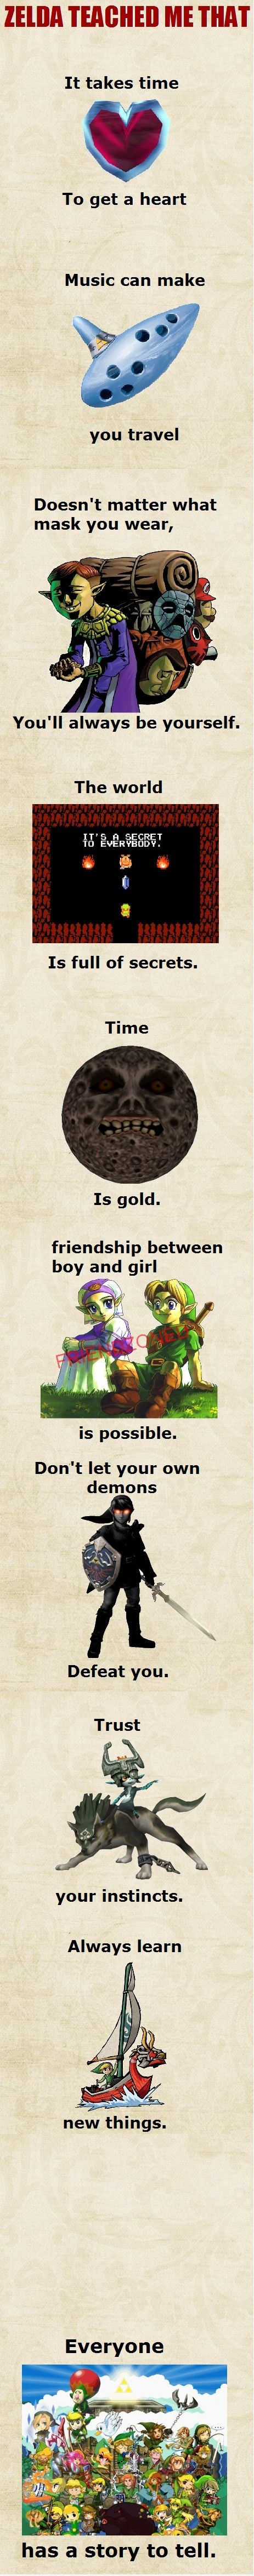 "Love it except that the first line is grammatically incorrect and should be ""Zelda taught me that"""